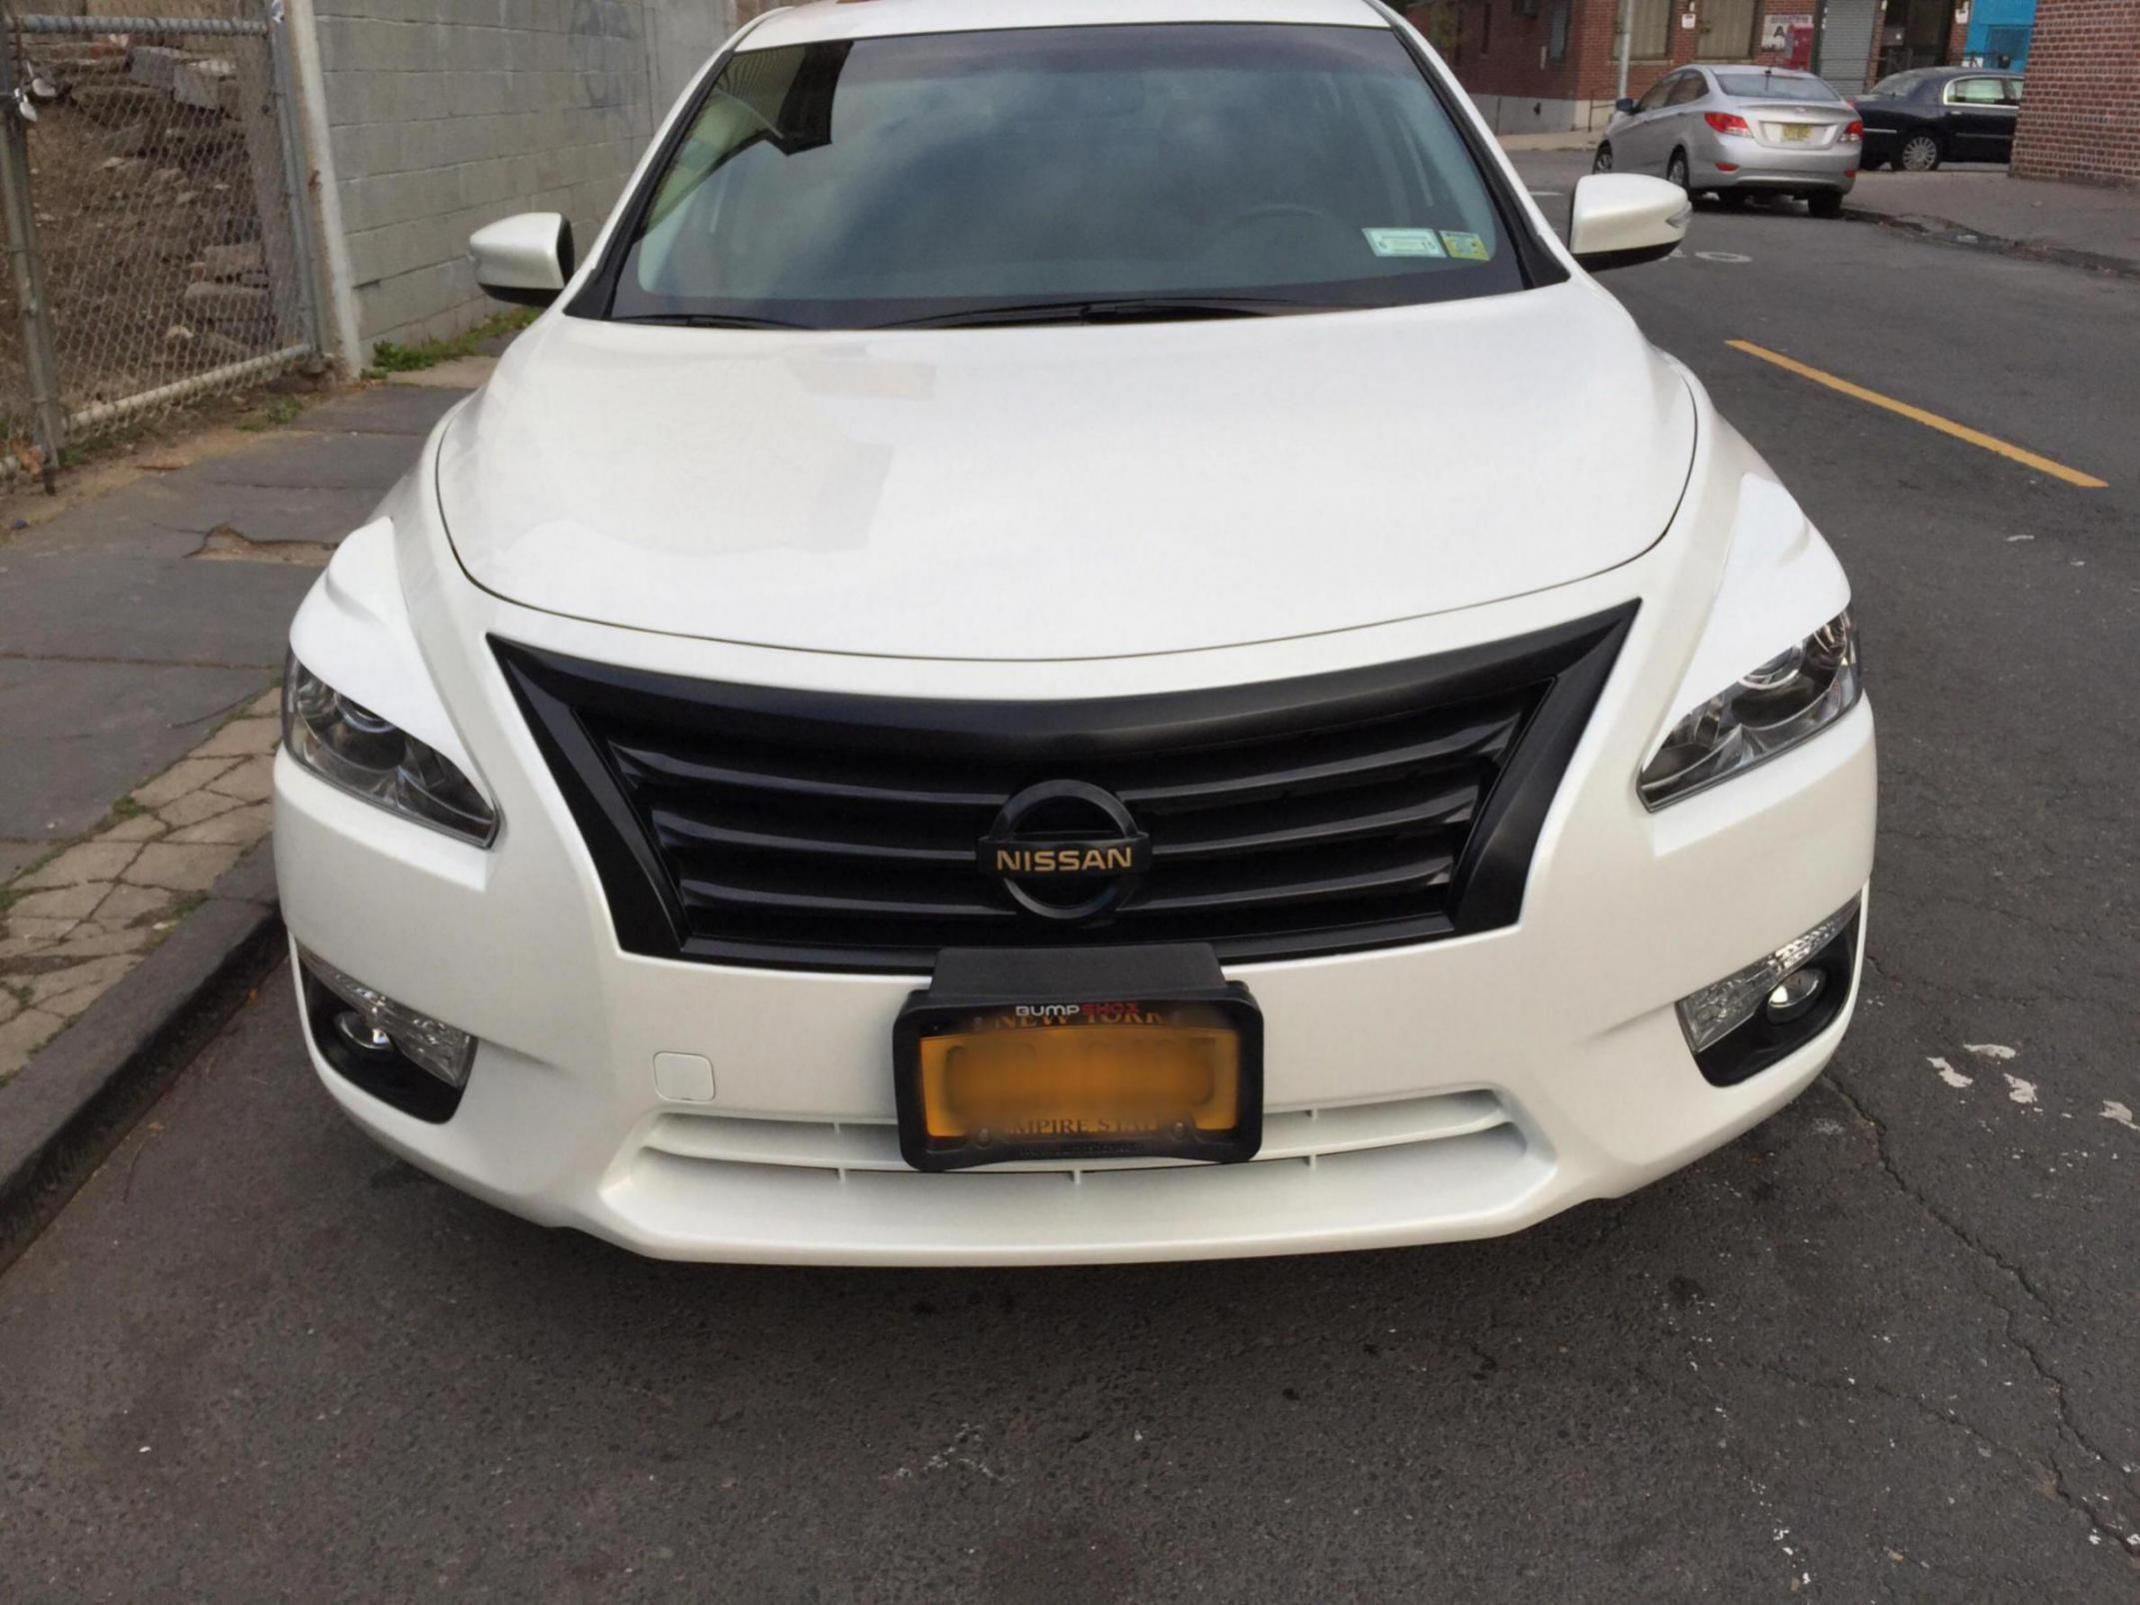 2014 nissan altima front bumper grill stuff to buy pinterest 2014 nissan altima front bumper grill stuff to buy pinterest nissan altima nissan and cars vanachro Image collections